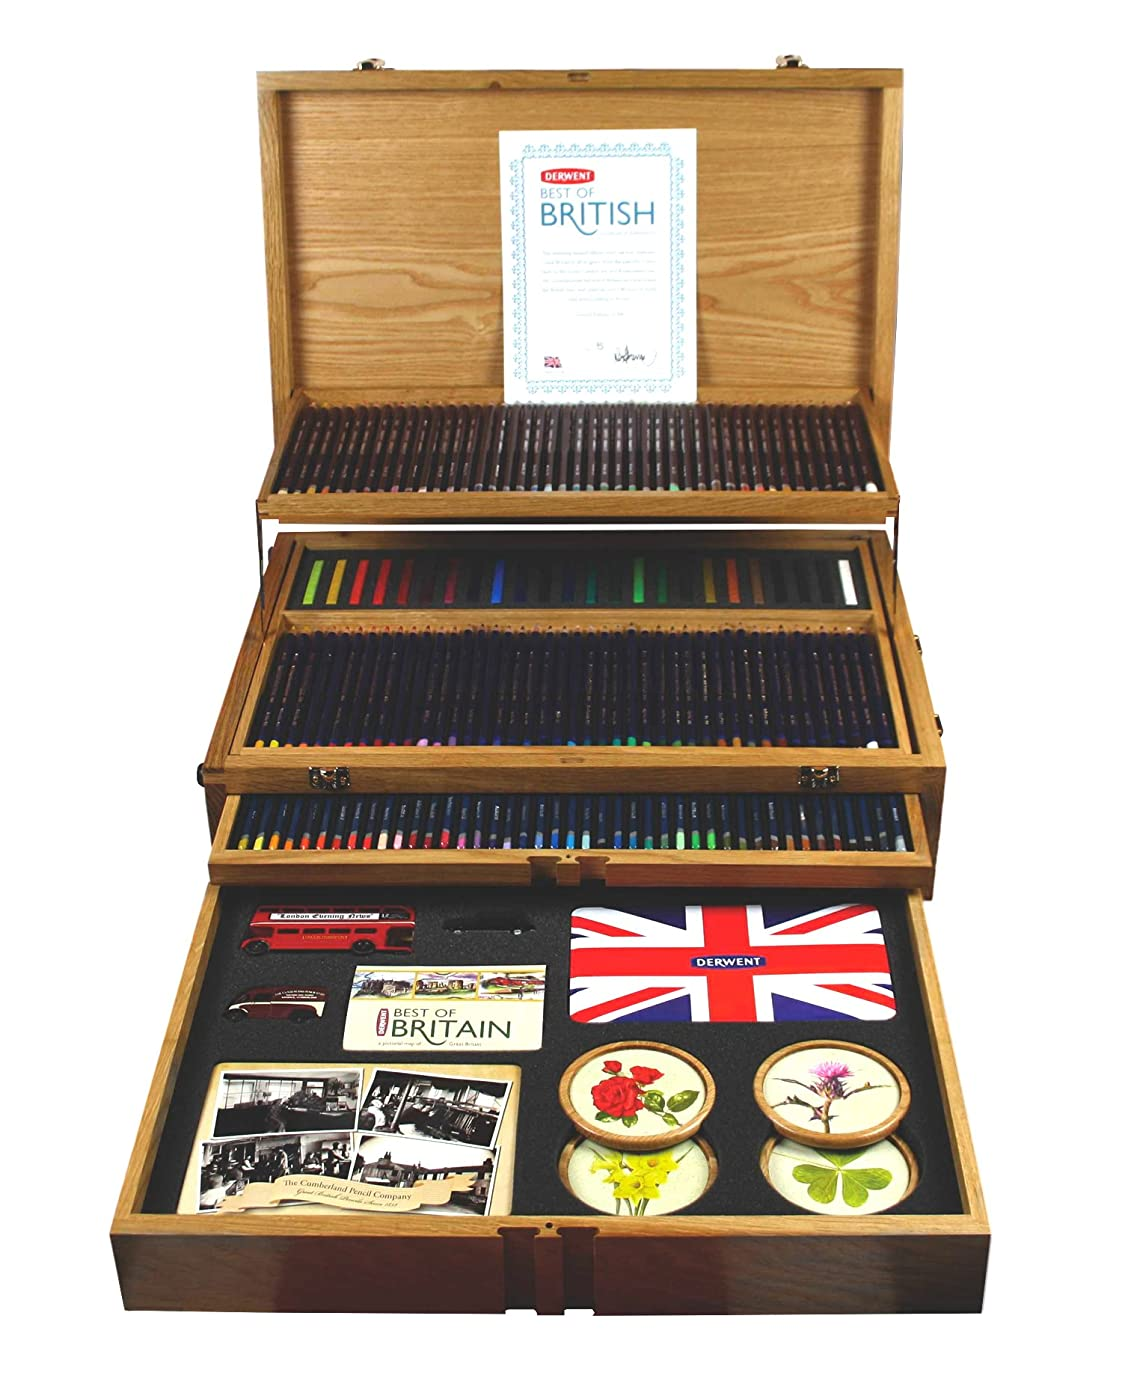 Derwent Fine Art Pencils and Accessories, Best of British, Wooden Box, 165 Pencils (2300674)